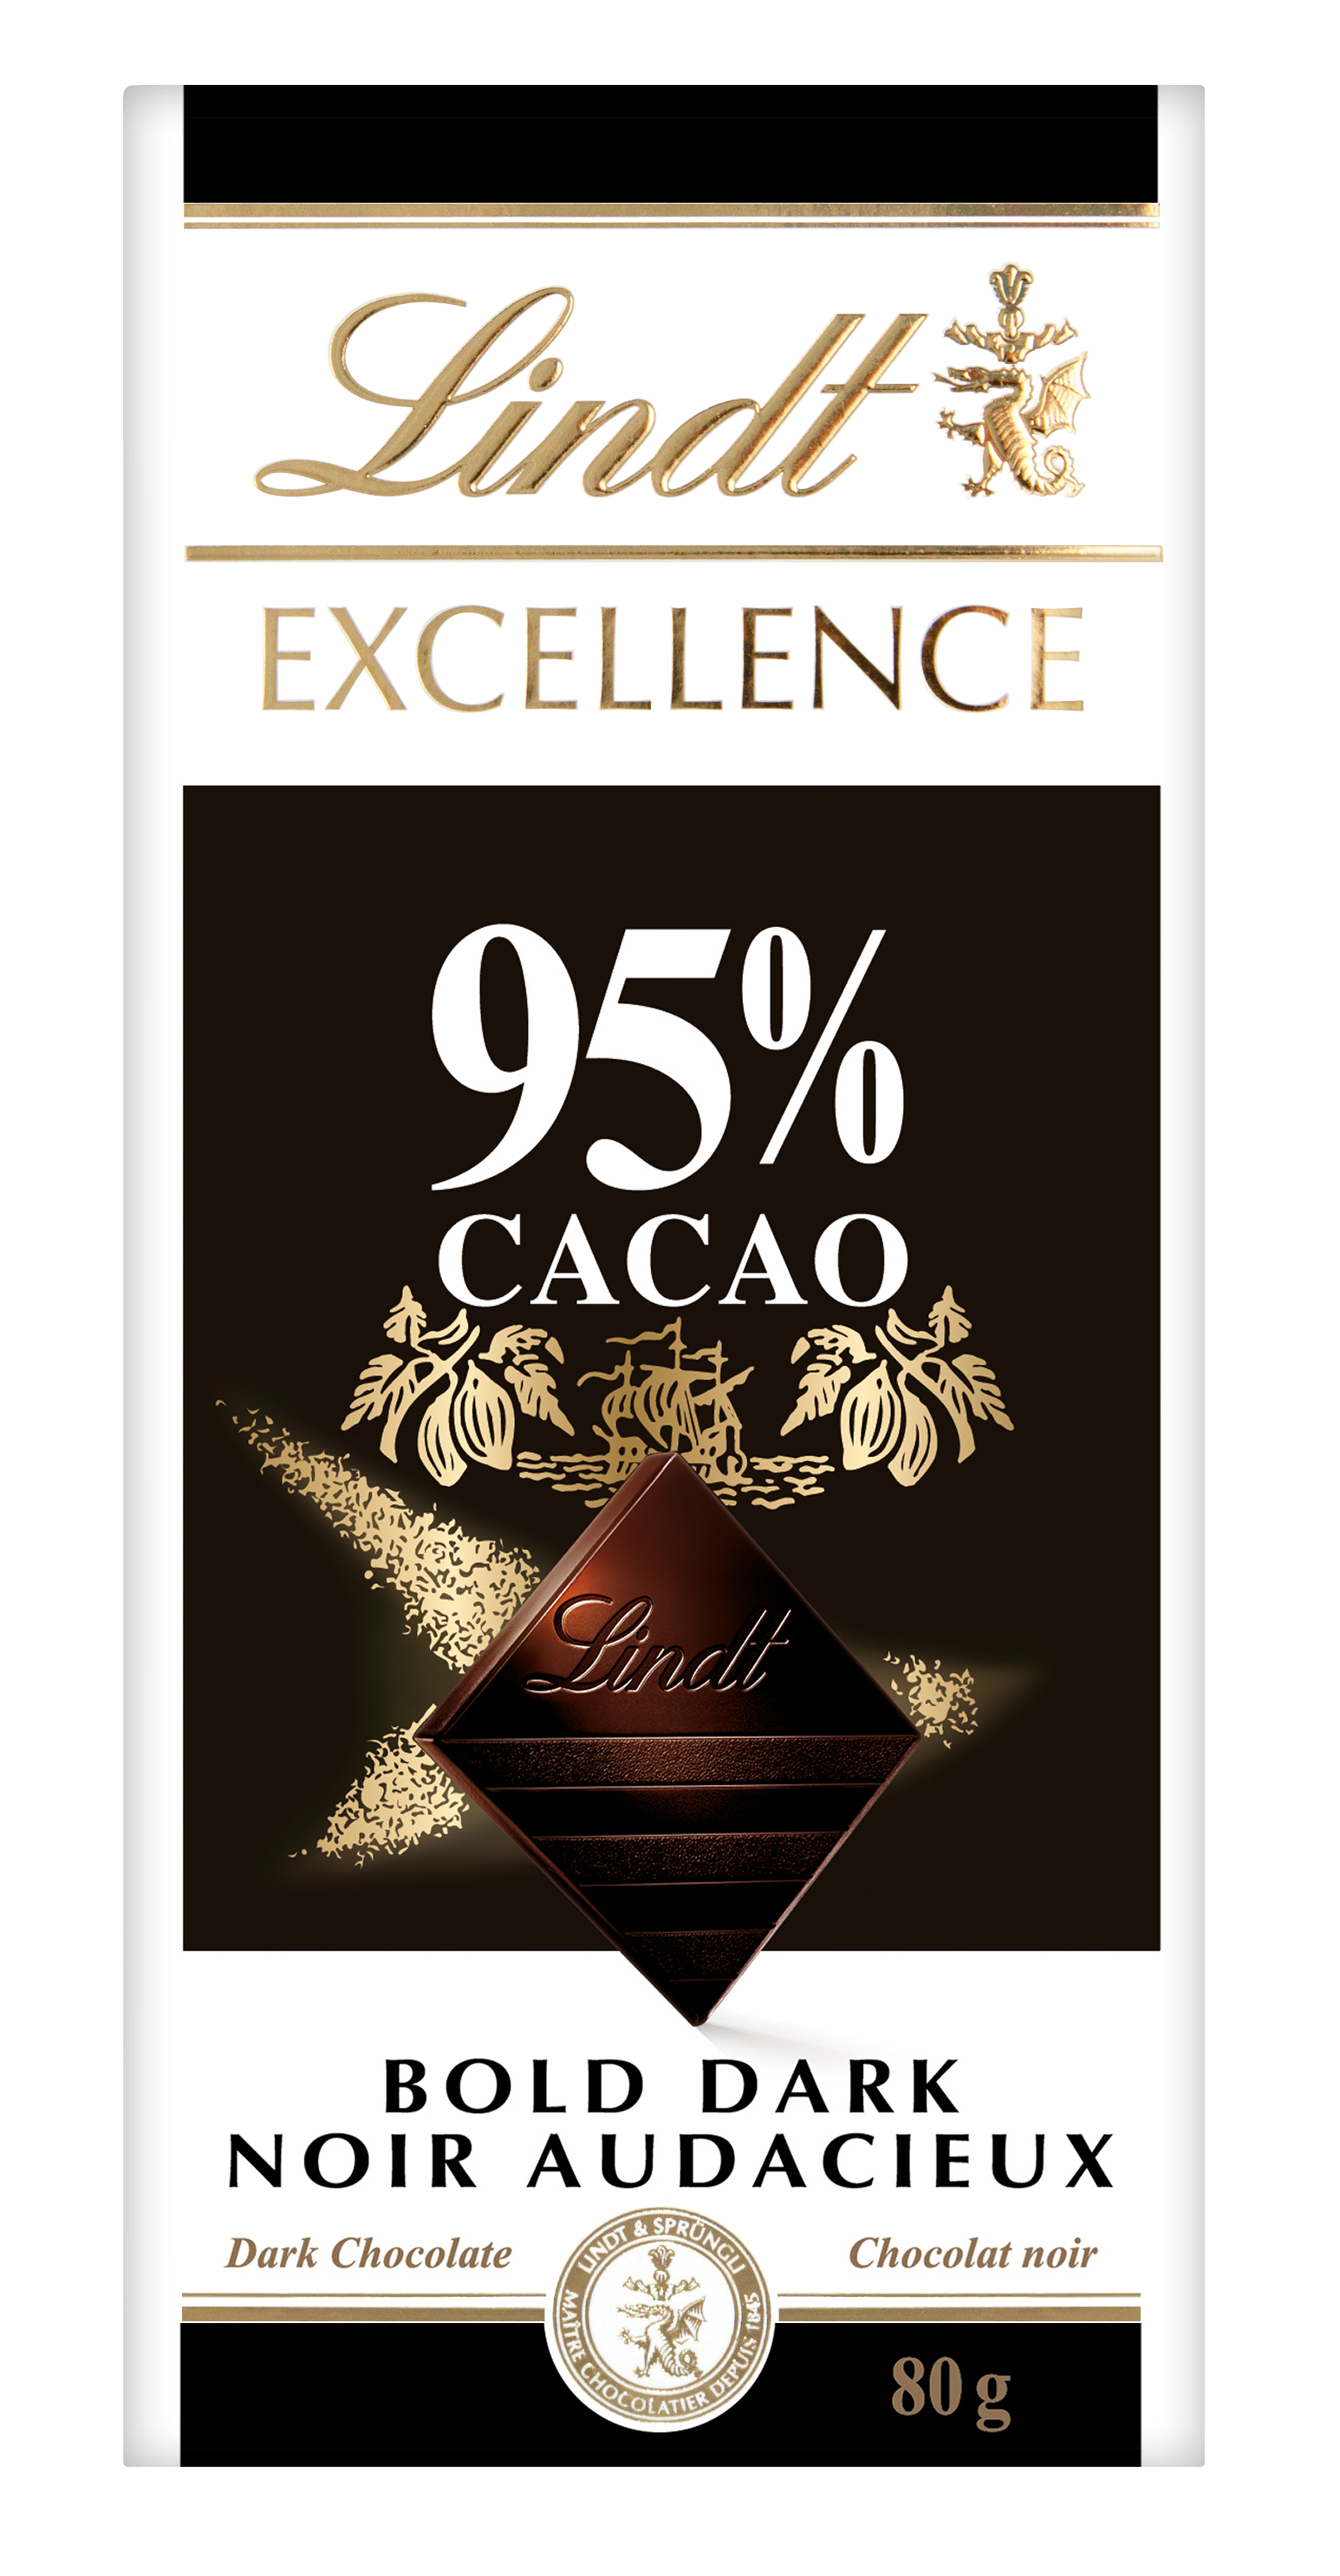 LINDT EXCELLENCE 95% CACAO 80G